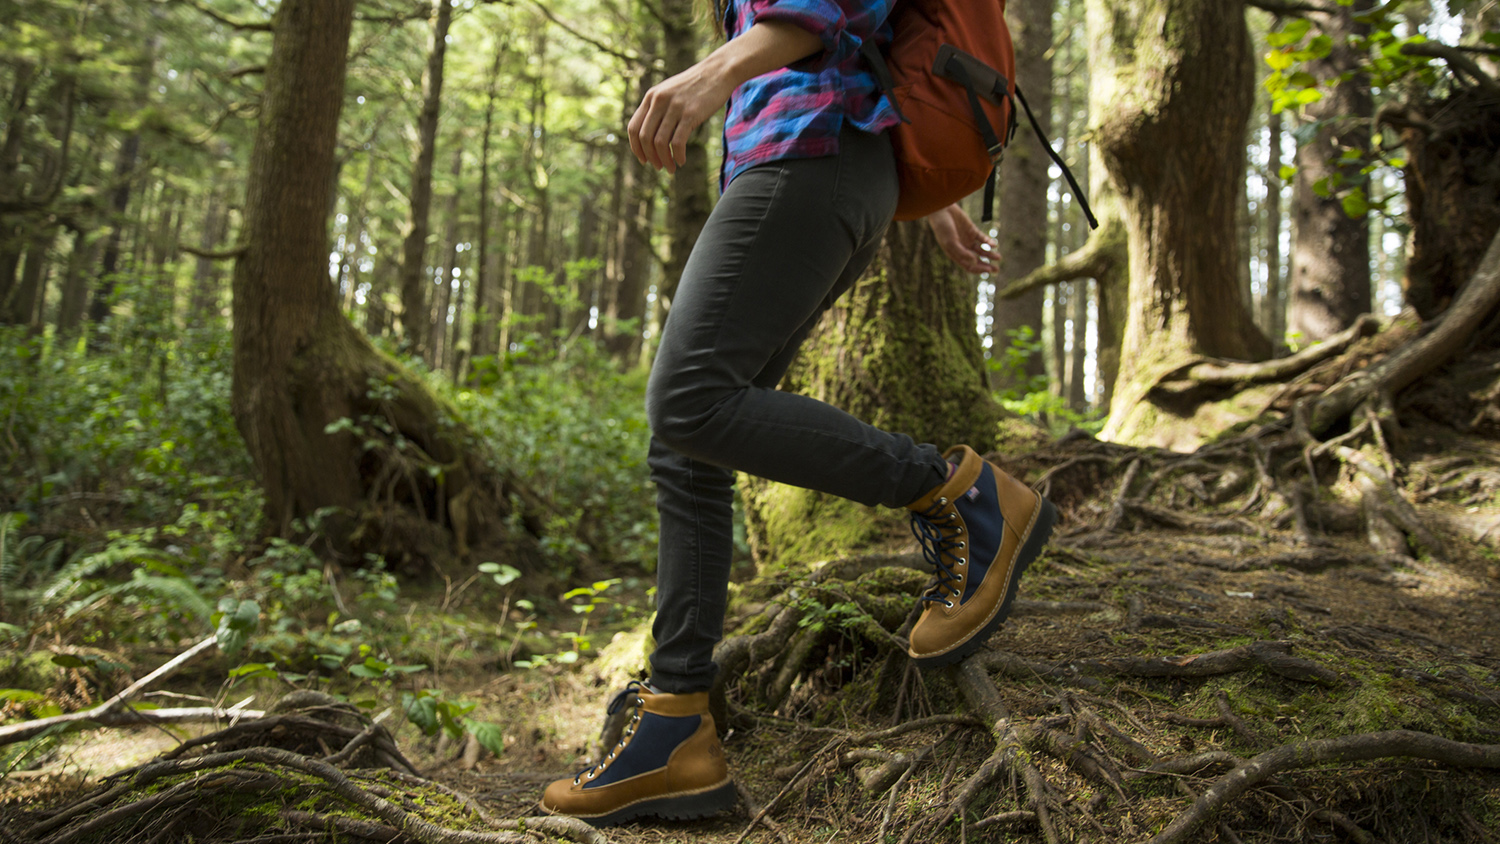 5 walking boot technologies that help you hike for longer | T3